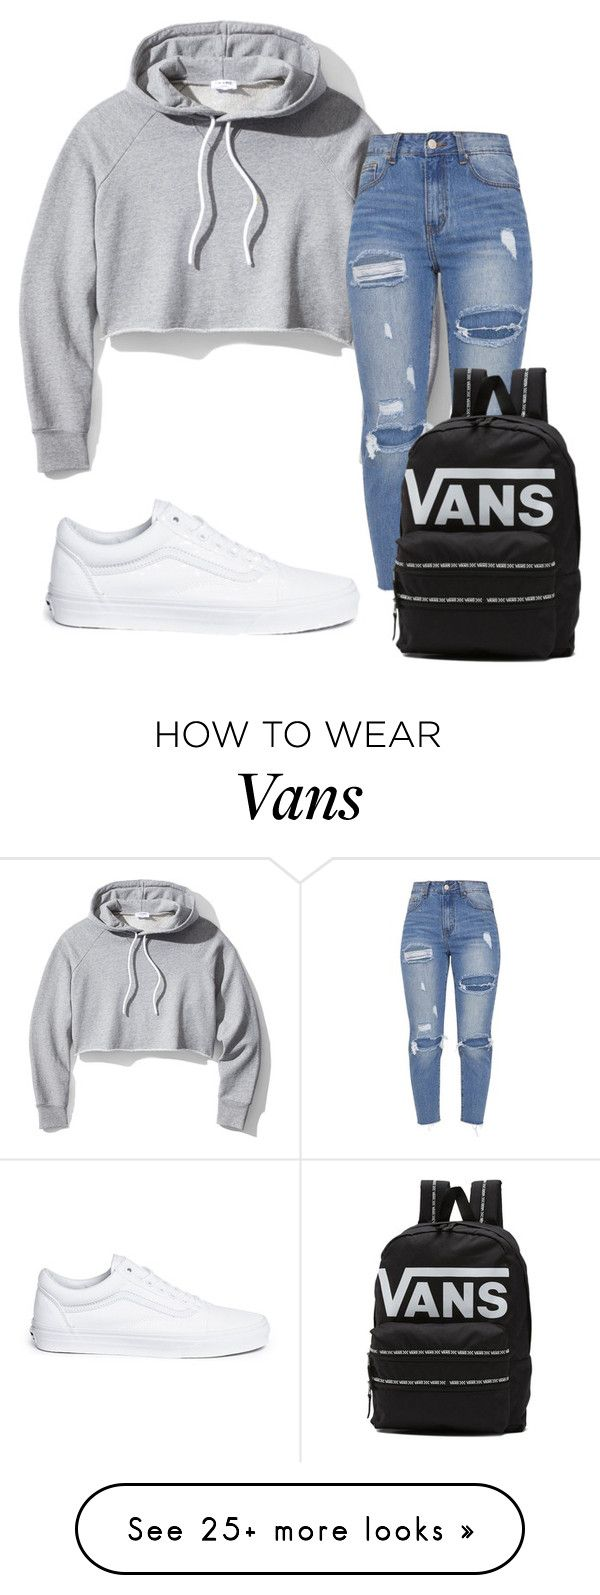 """Untitled #3686"" by mfr-mtz on Polyvore featuring Frame and Vans"